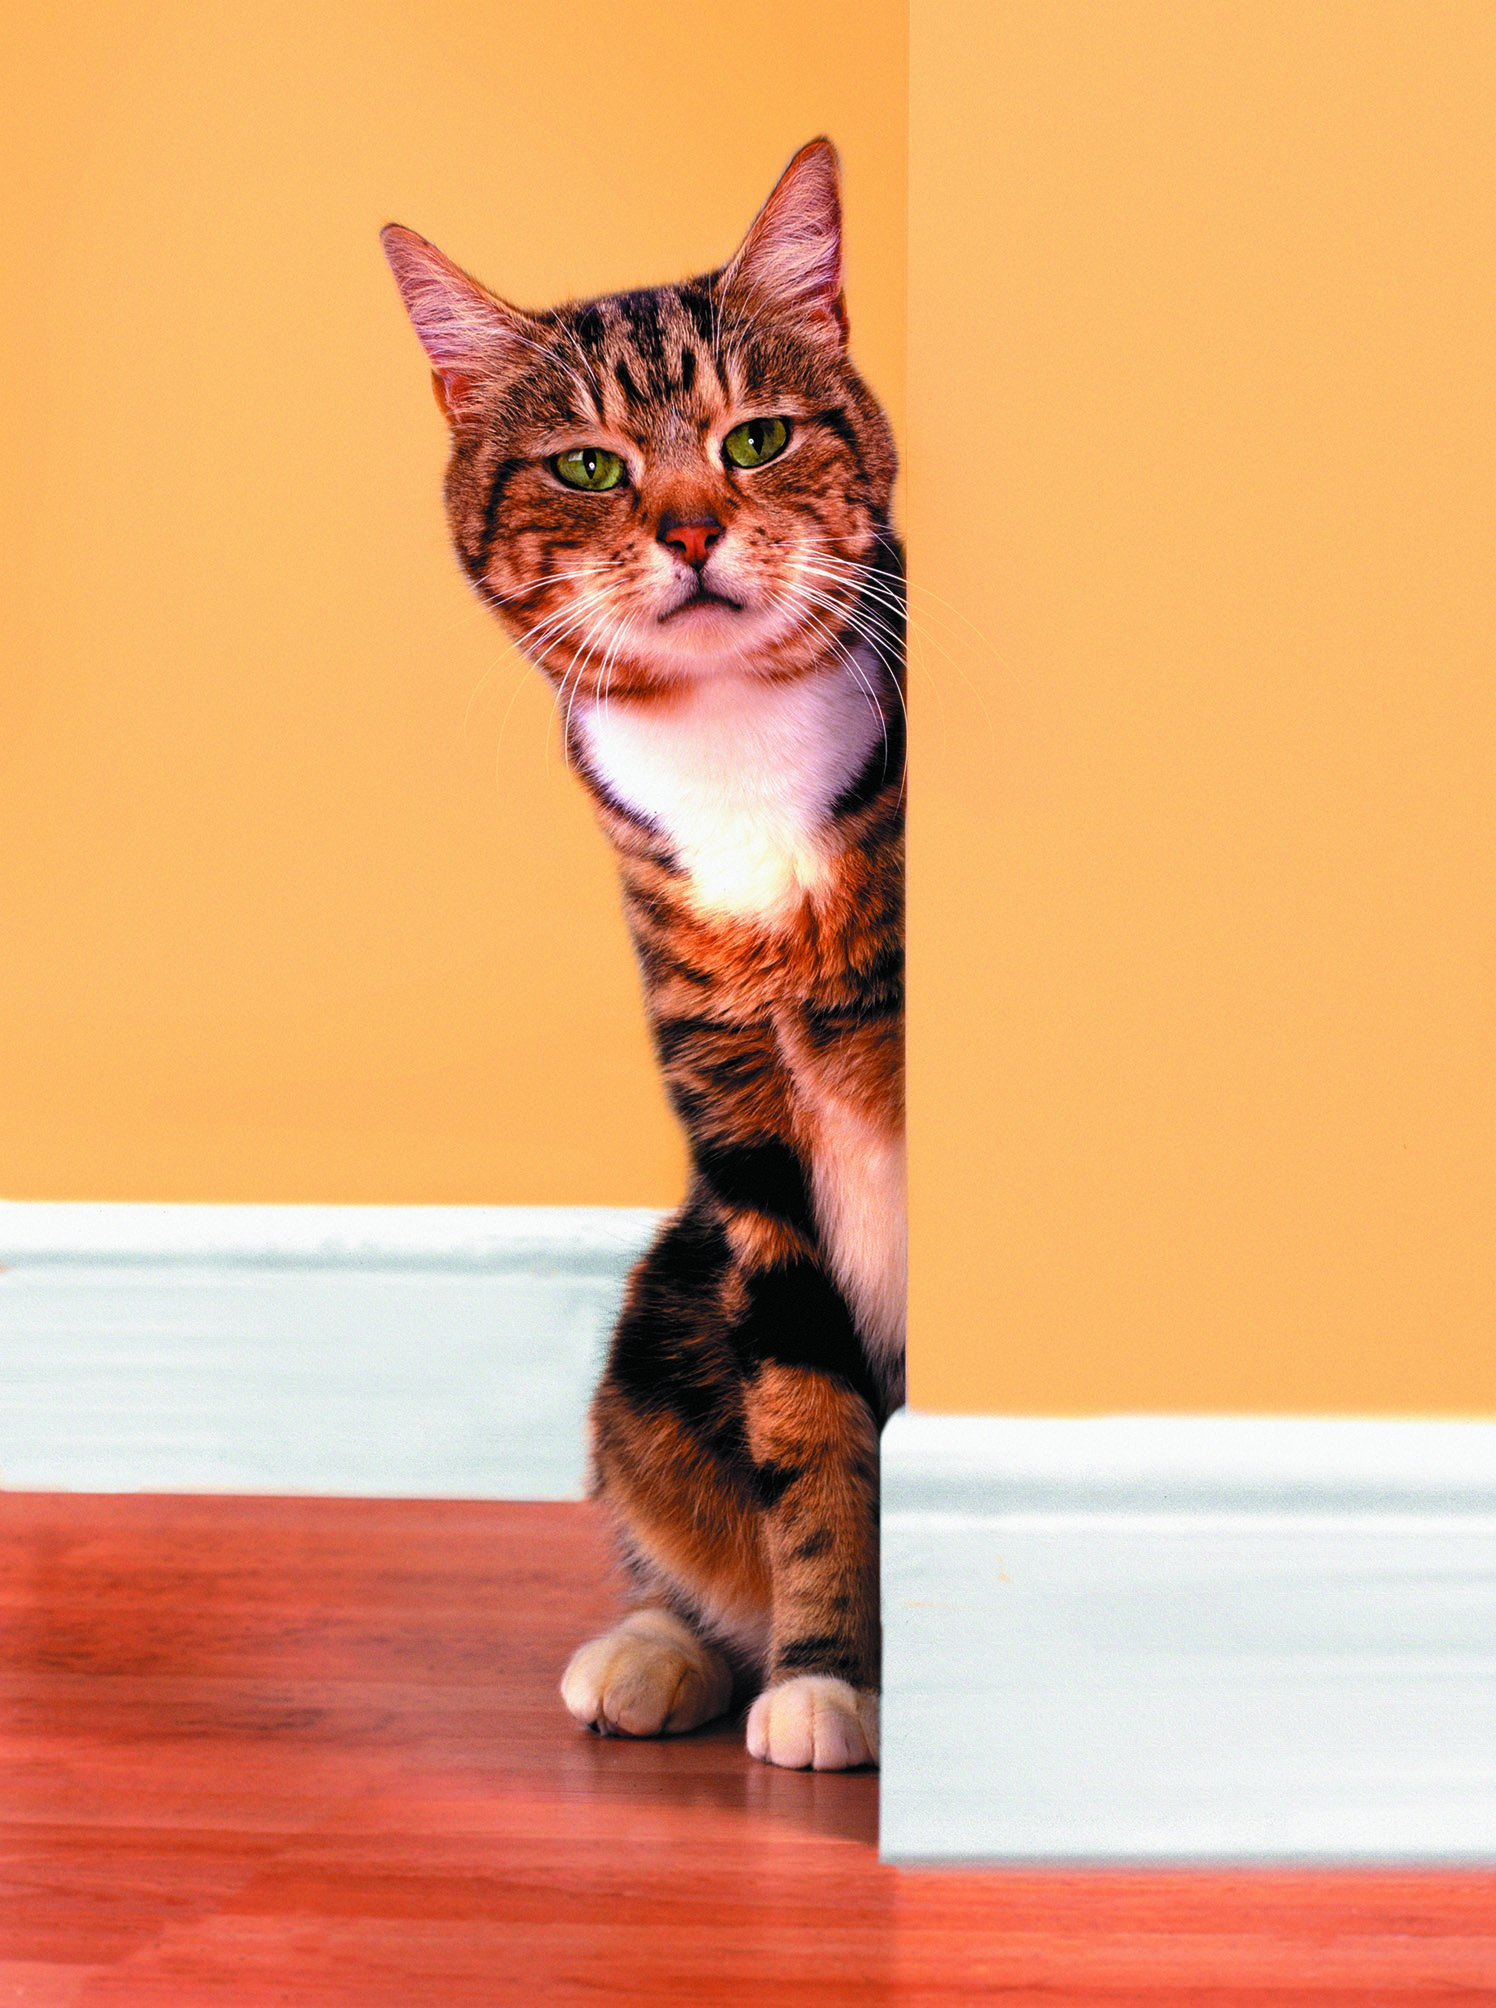 How To Fix Cat Scratches On Wallpaper